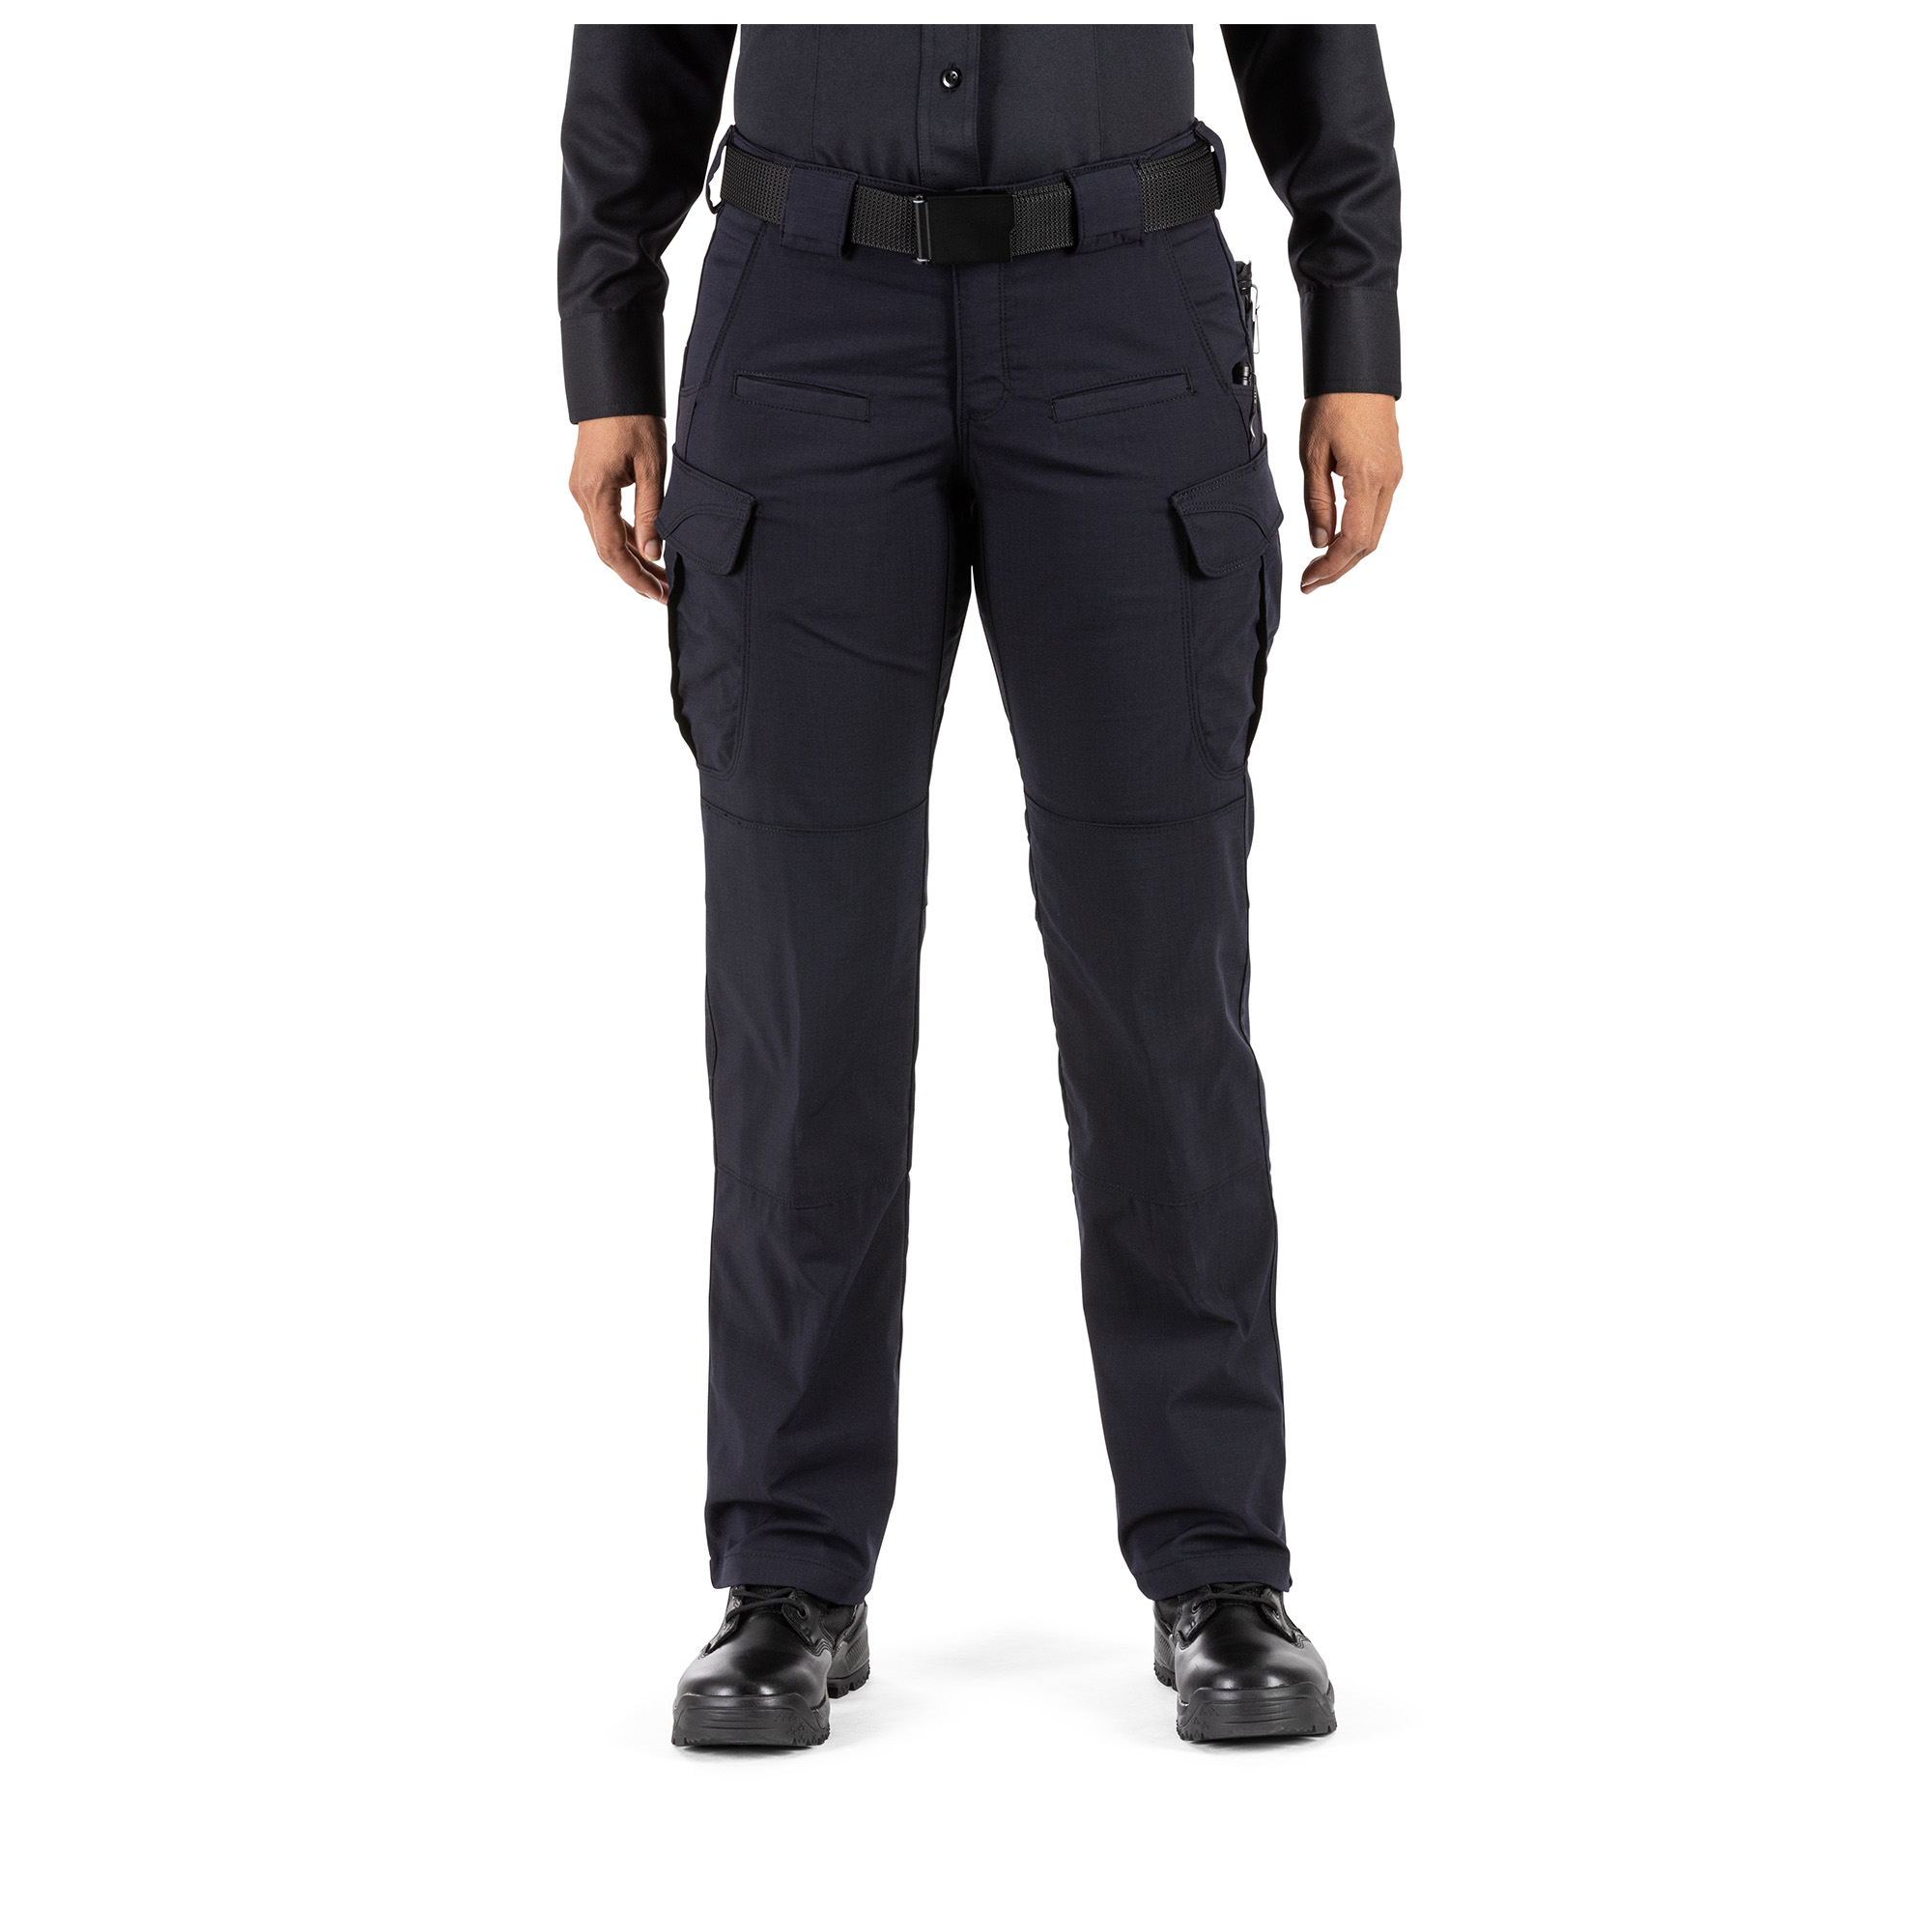 5.11 Tactical Women's Womens NYPD Stryke Pant